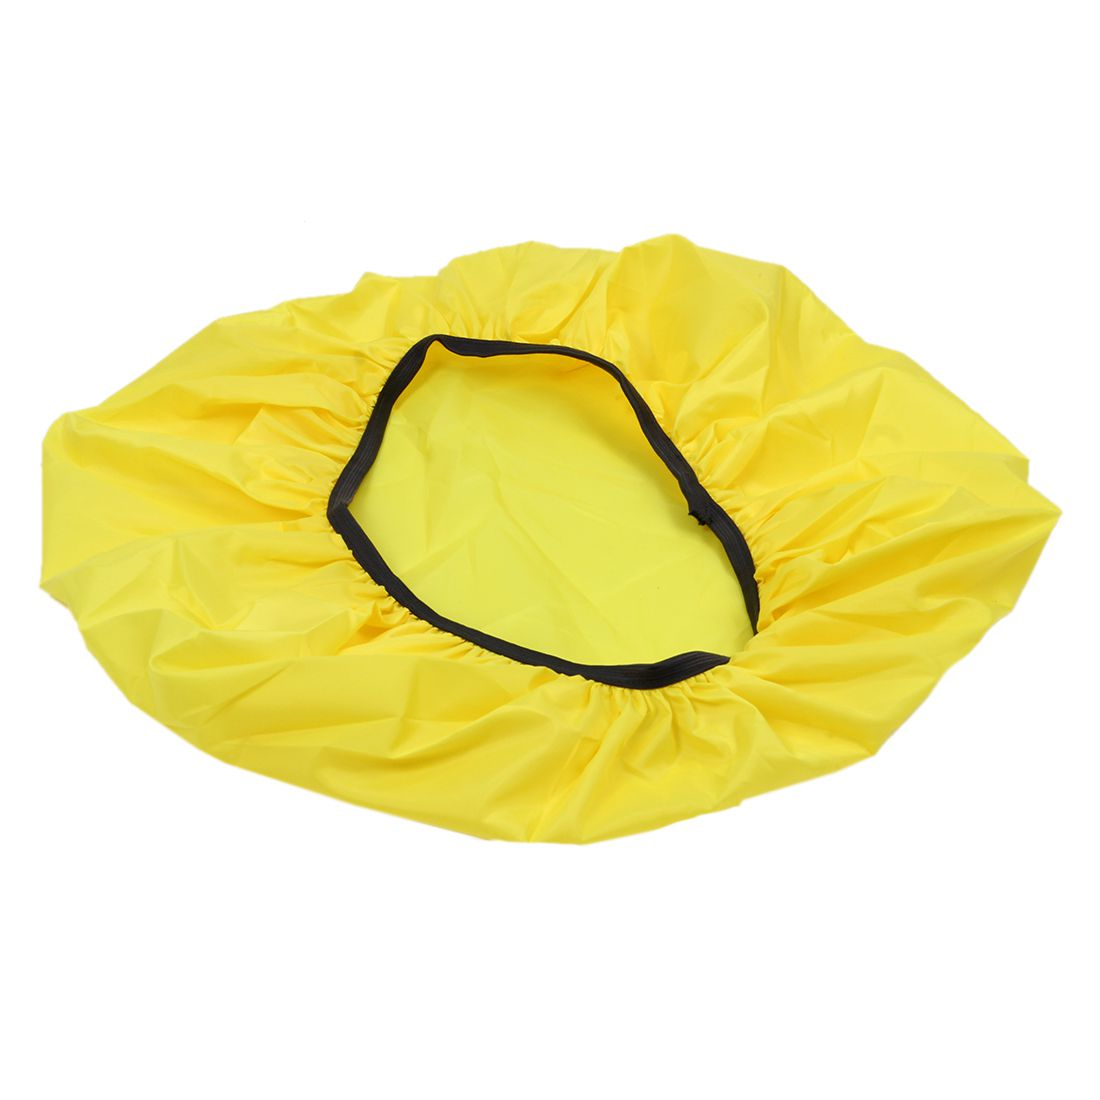 New Waterproof Travel Accessory Backpack Dust Rain Cover 35L,Yellow